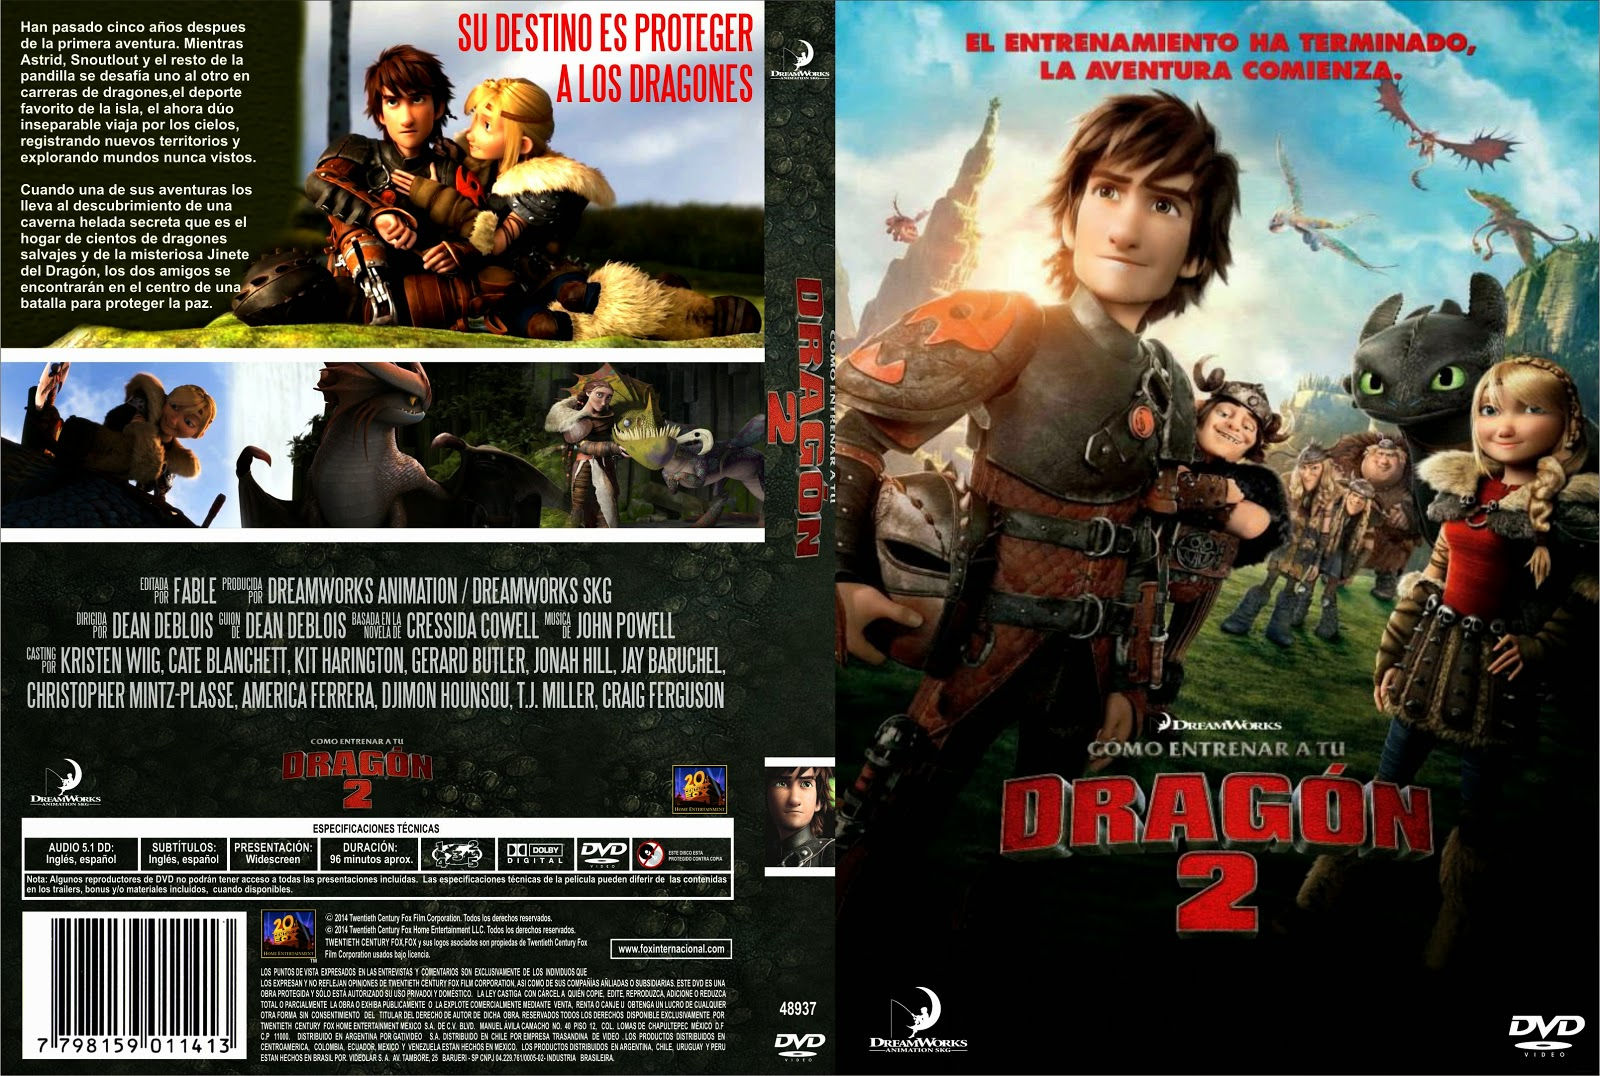 PB   DVD Cover / Caratula FREE: HOW TO TRAIN YOUR DRAGON 2 ...